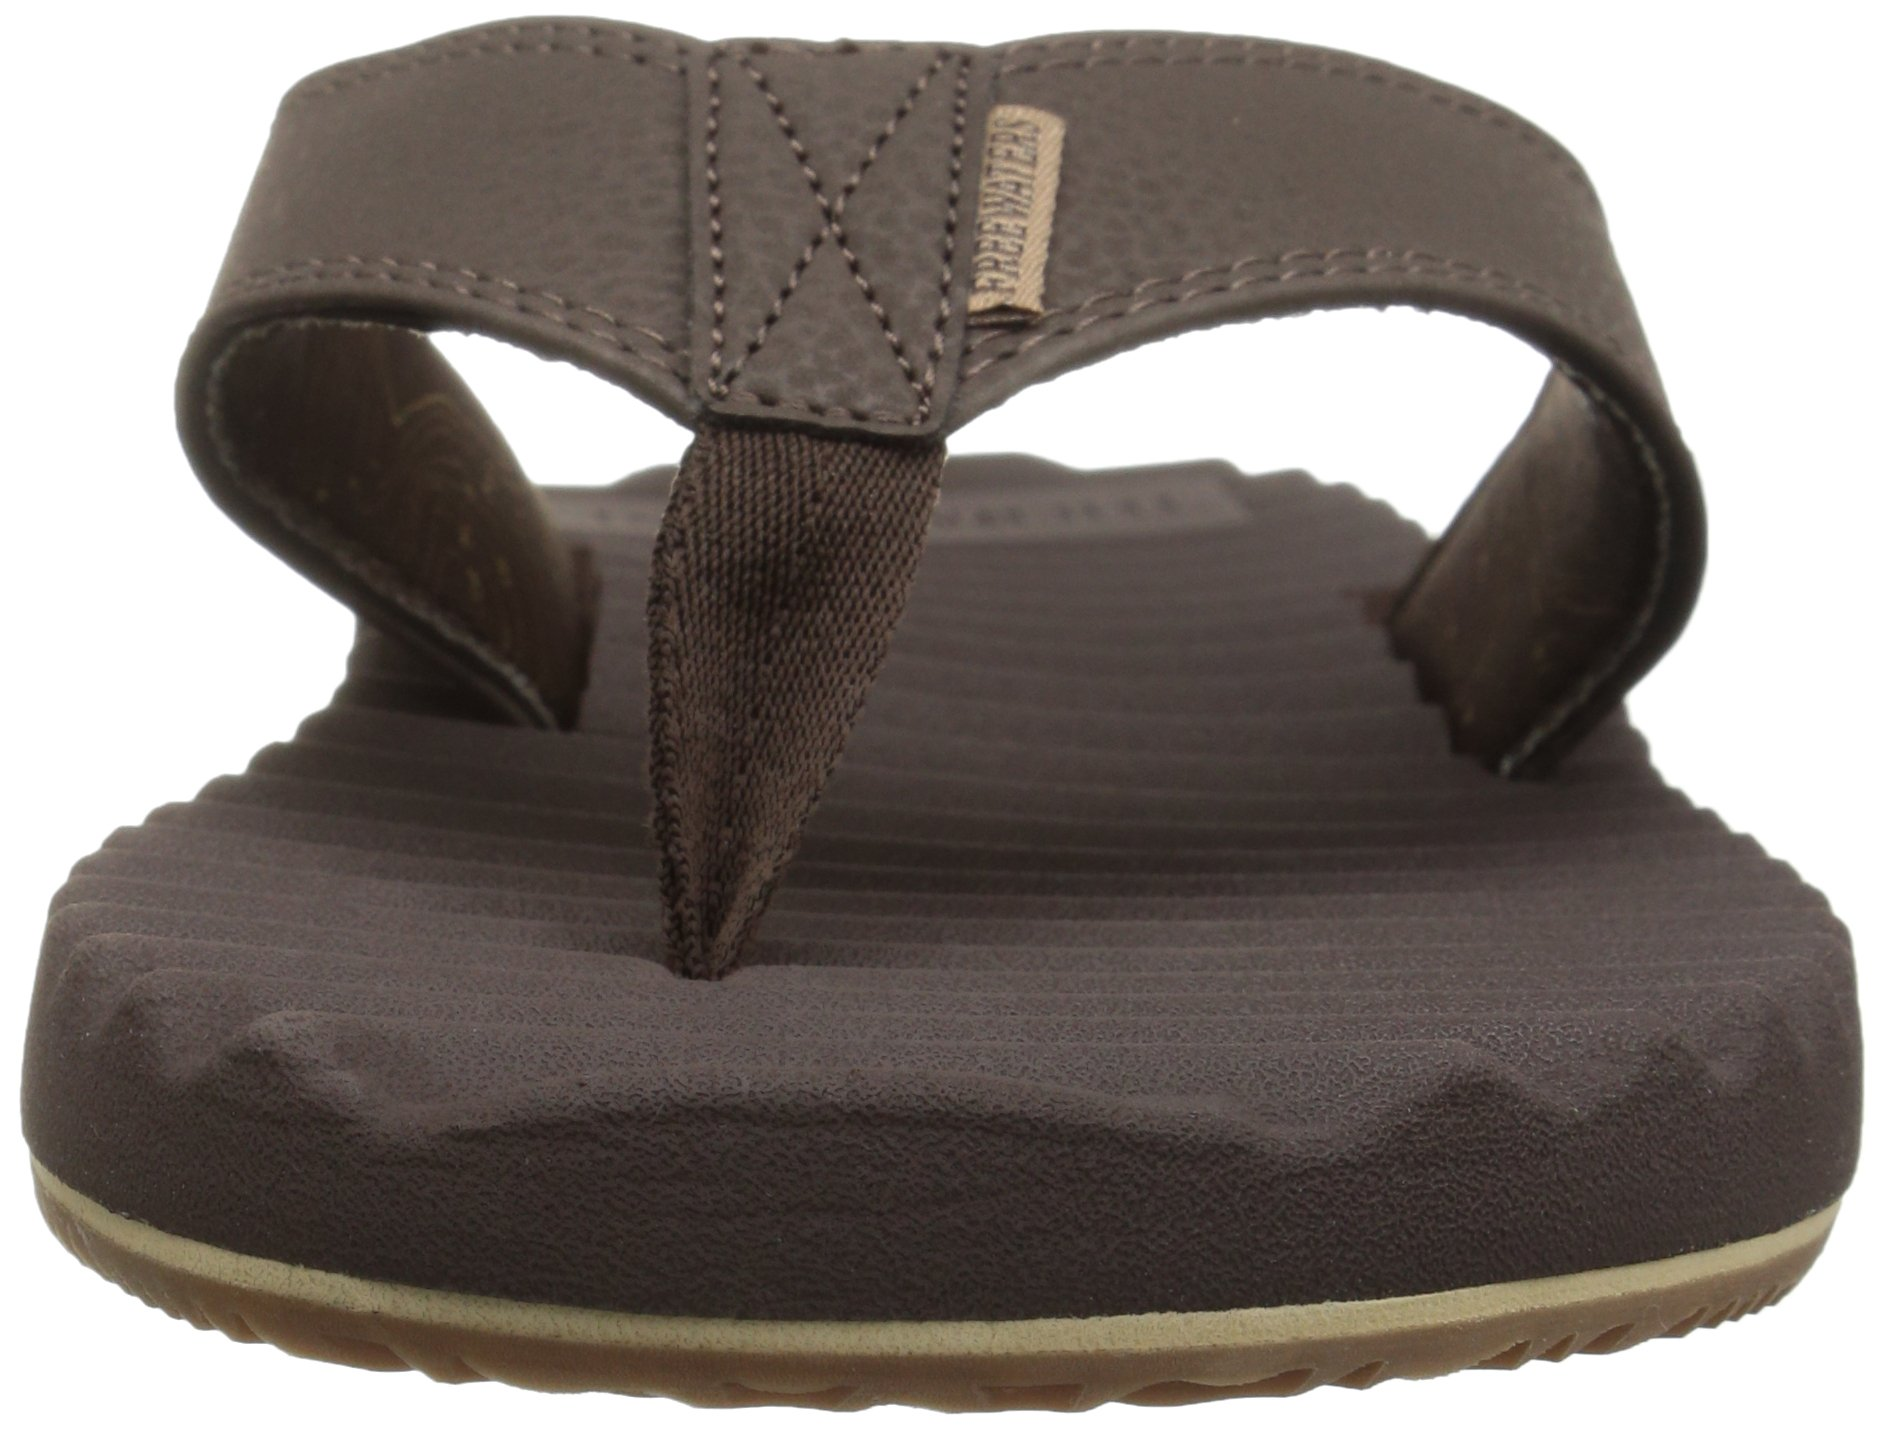 Freewaters Men's Basecamp Therm-a-Rest Flip Flop Sandal, Brown, 10 M US by Freewaters (Image #4)